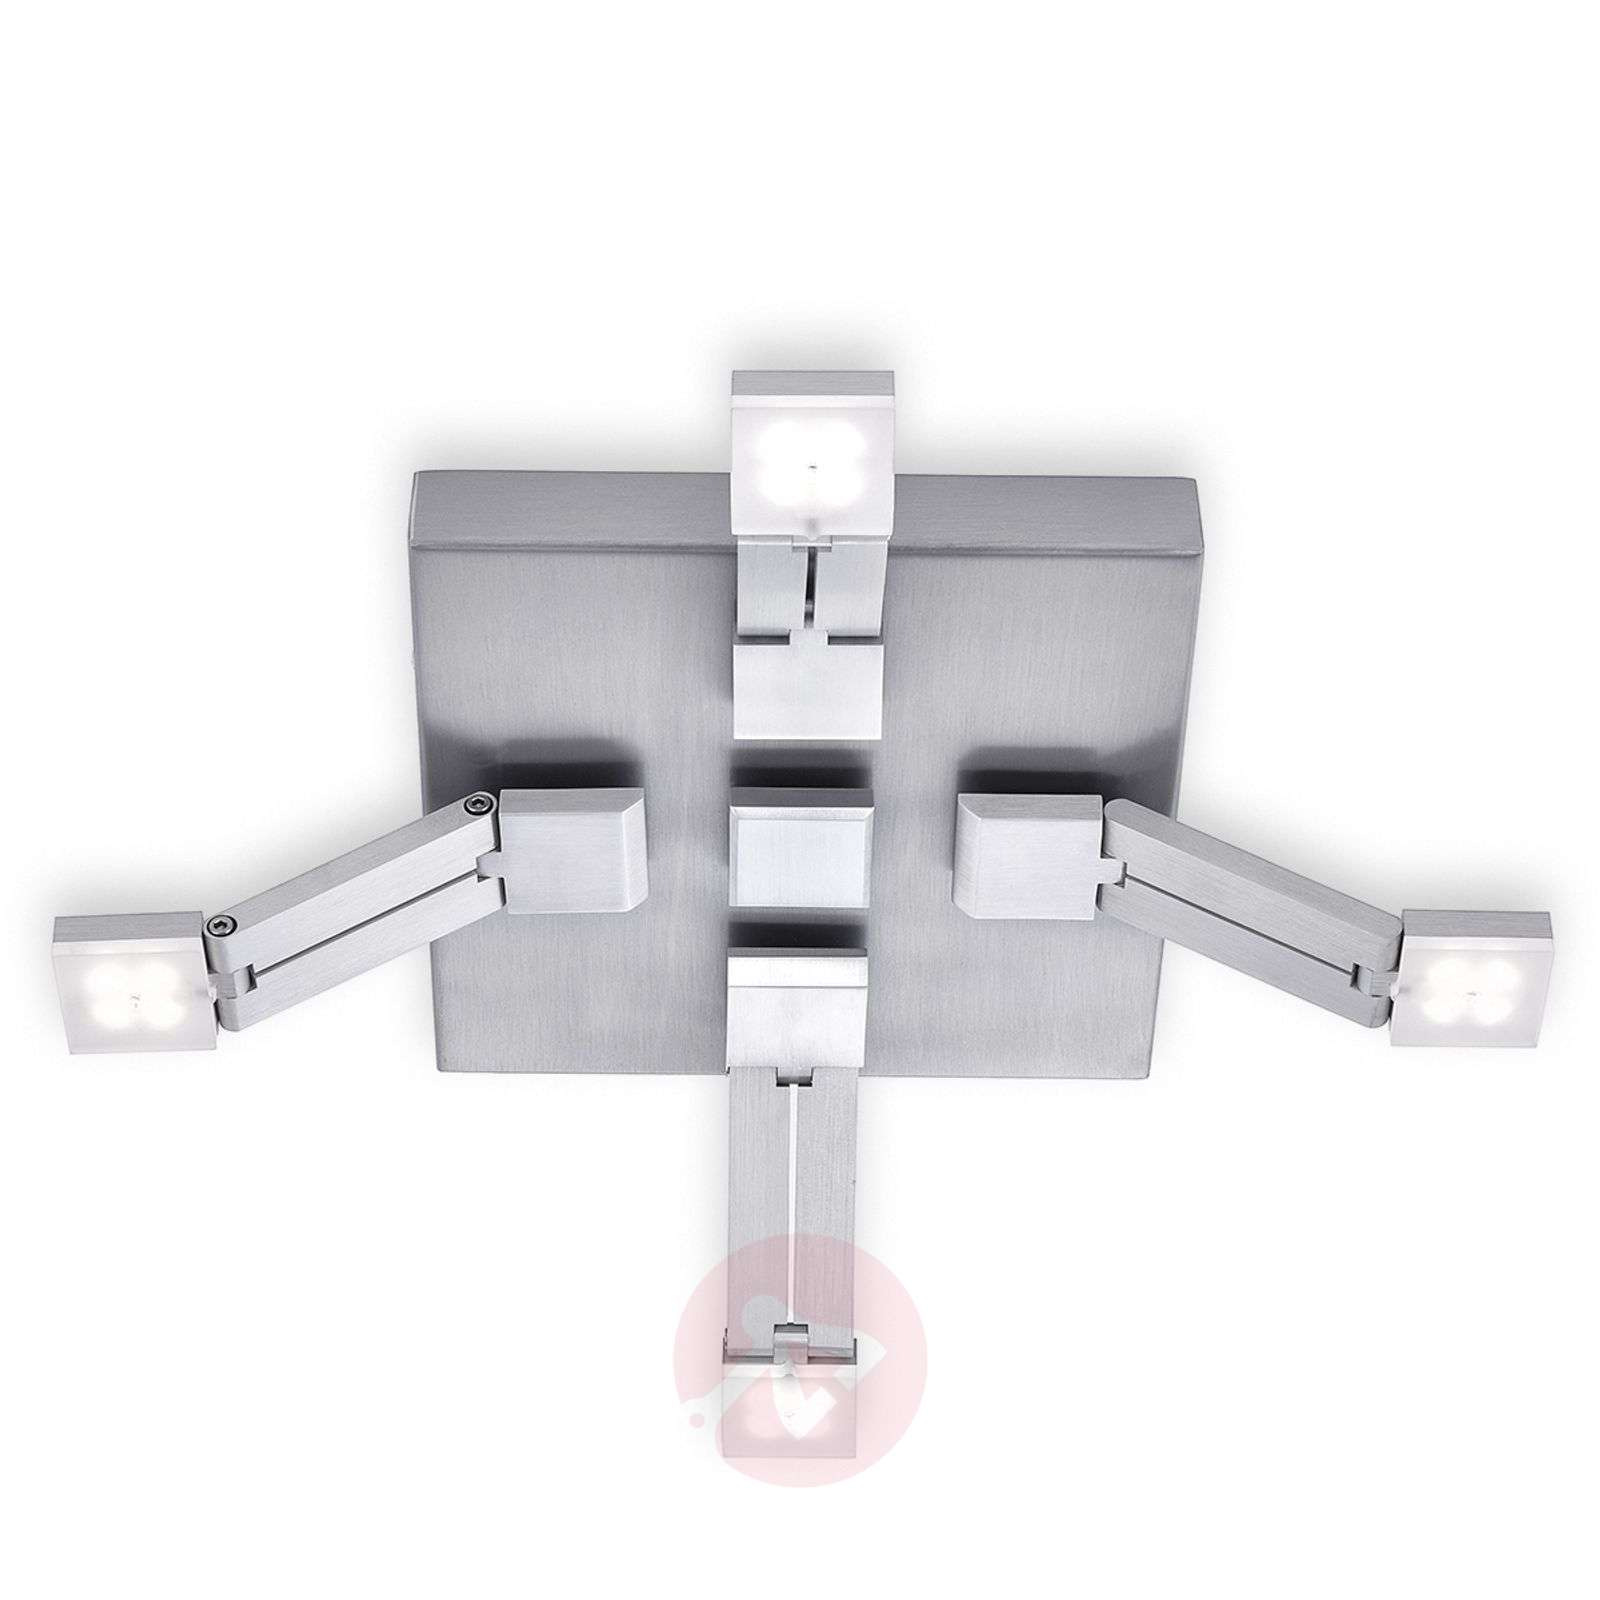 Plafonnier LED Transform variable, 4 lampes-7610523-01